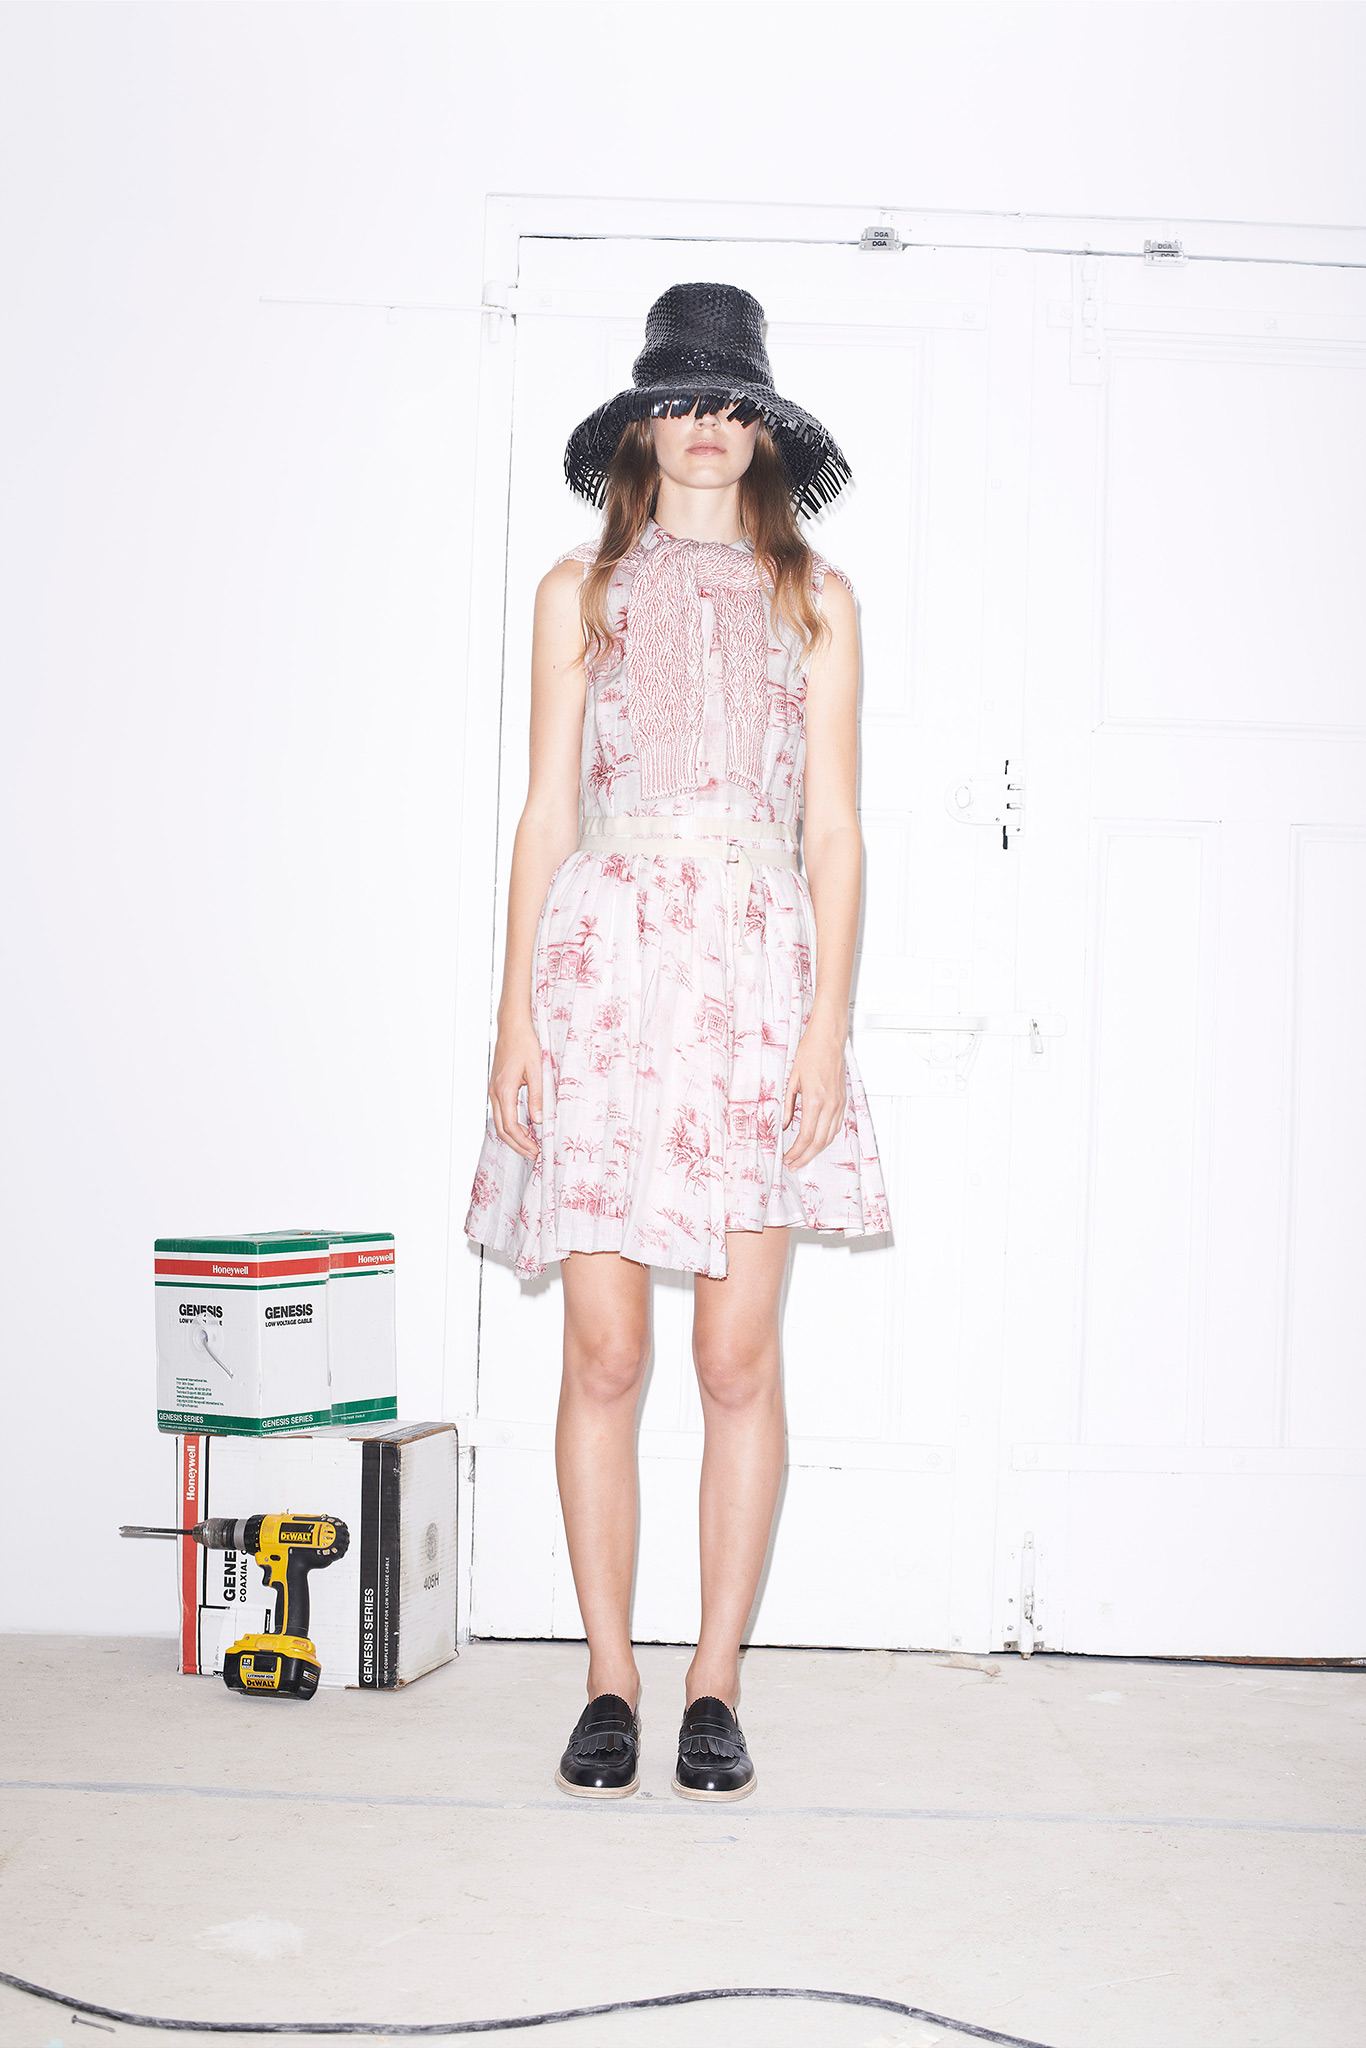 Band of Outsiders Spring 2015